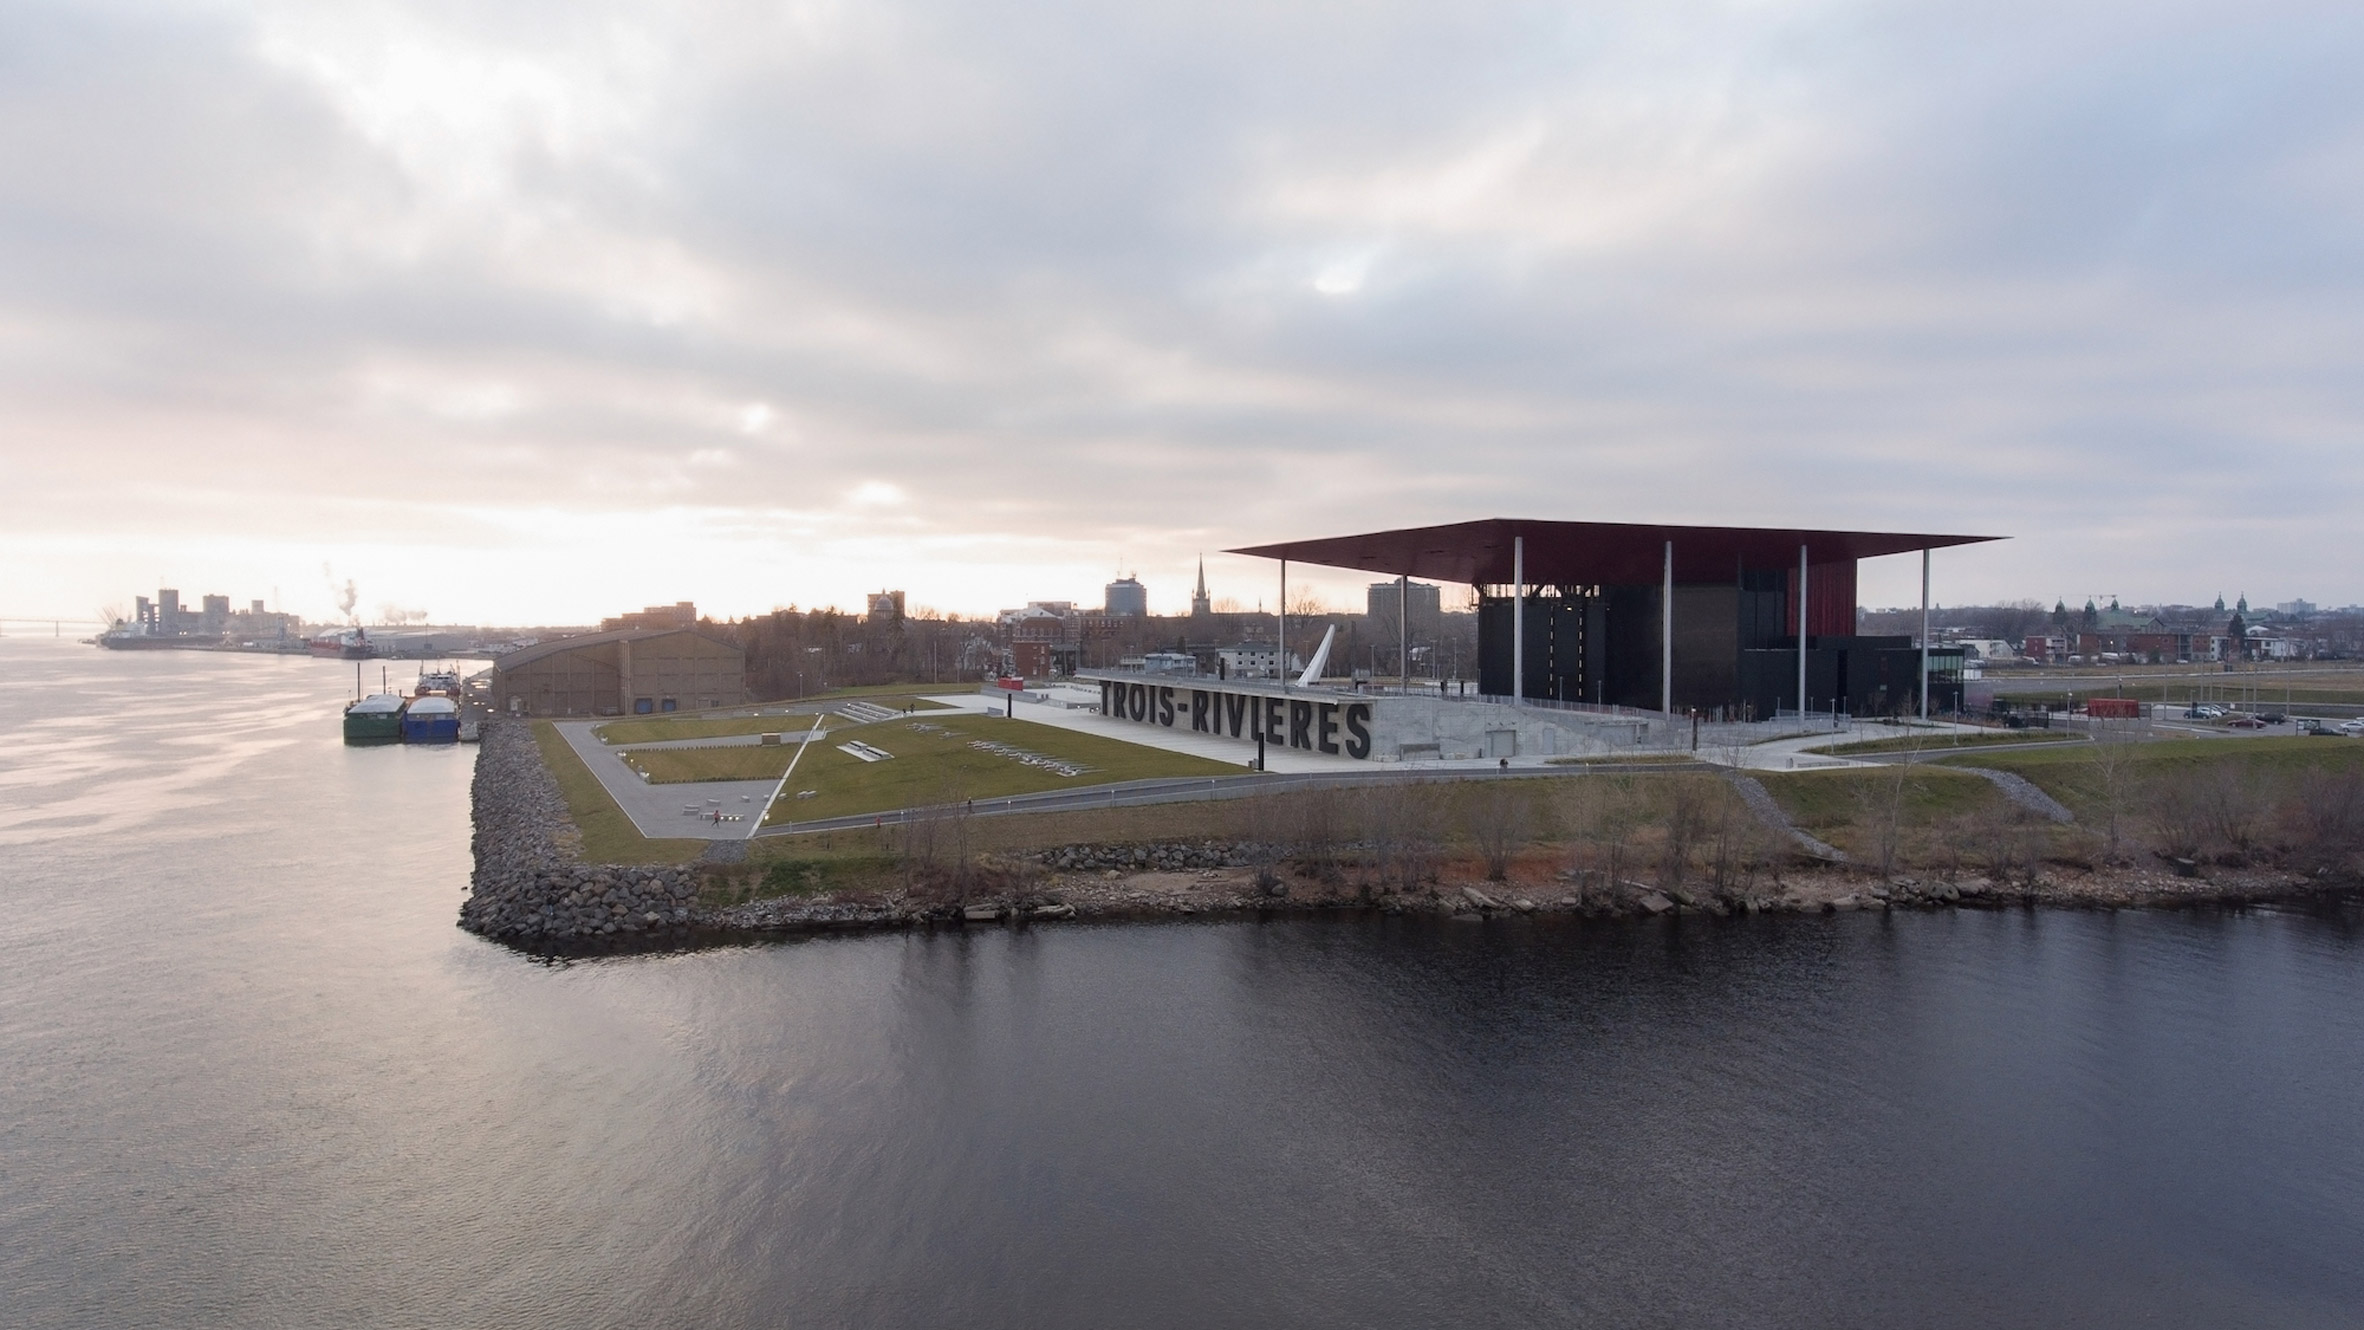 Paul Laurendeau covers Quebec amphitheatre with giant red roof